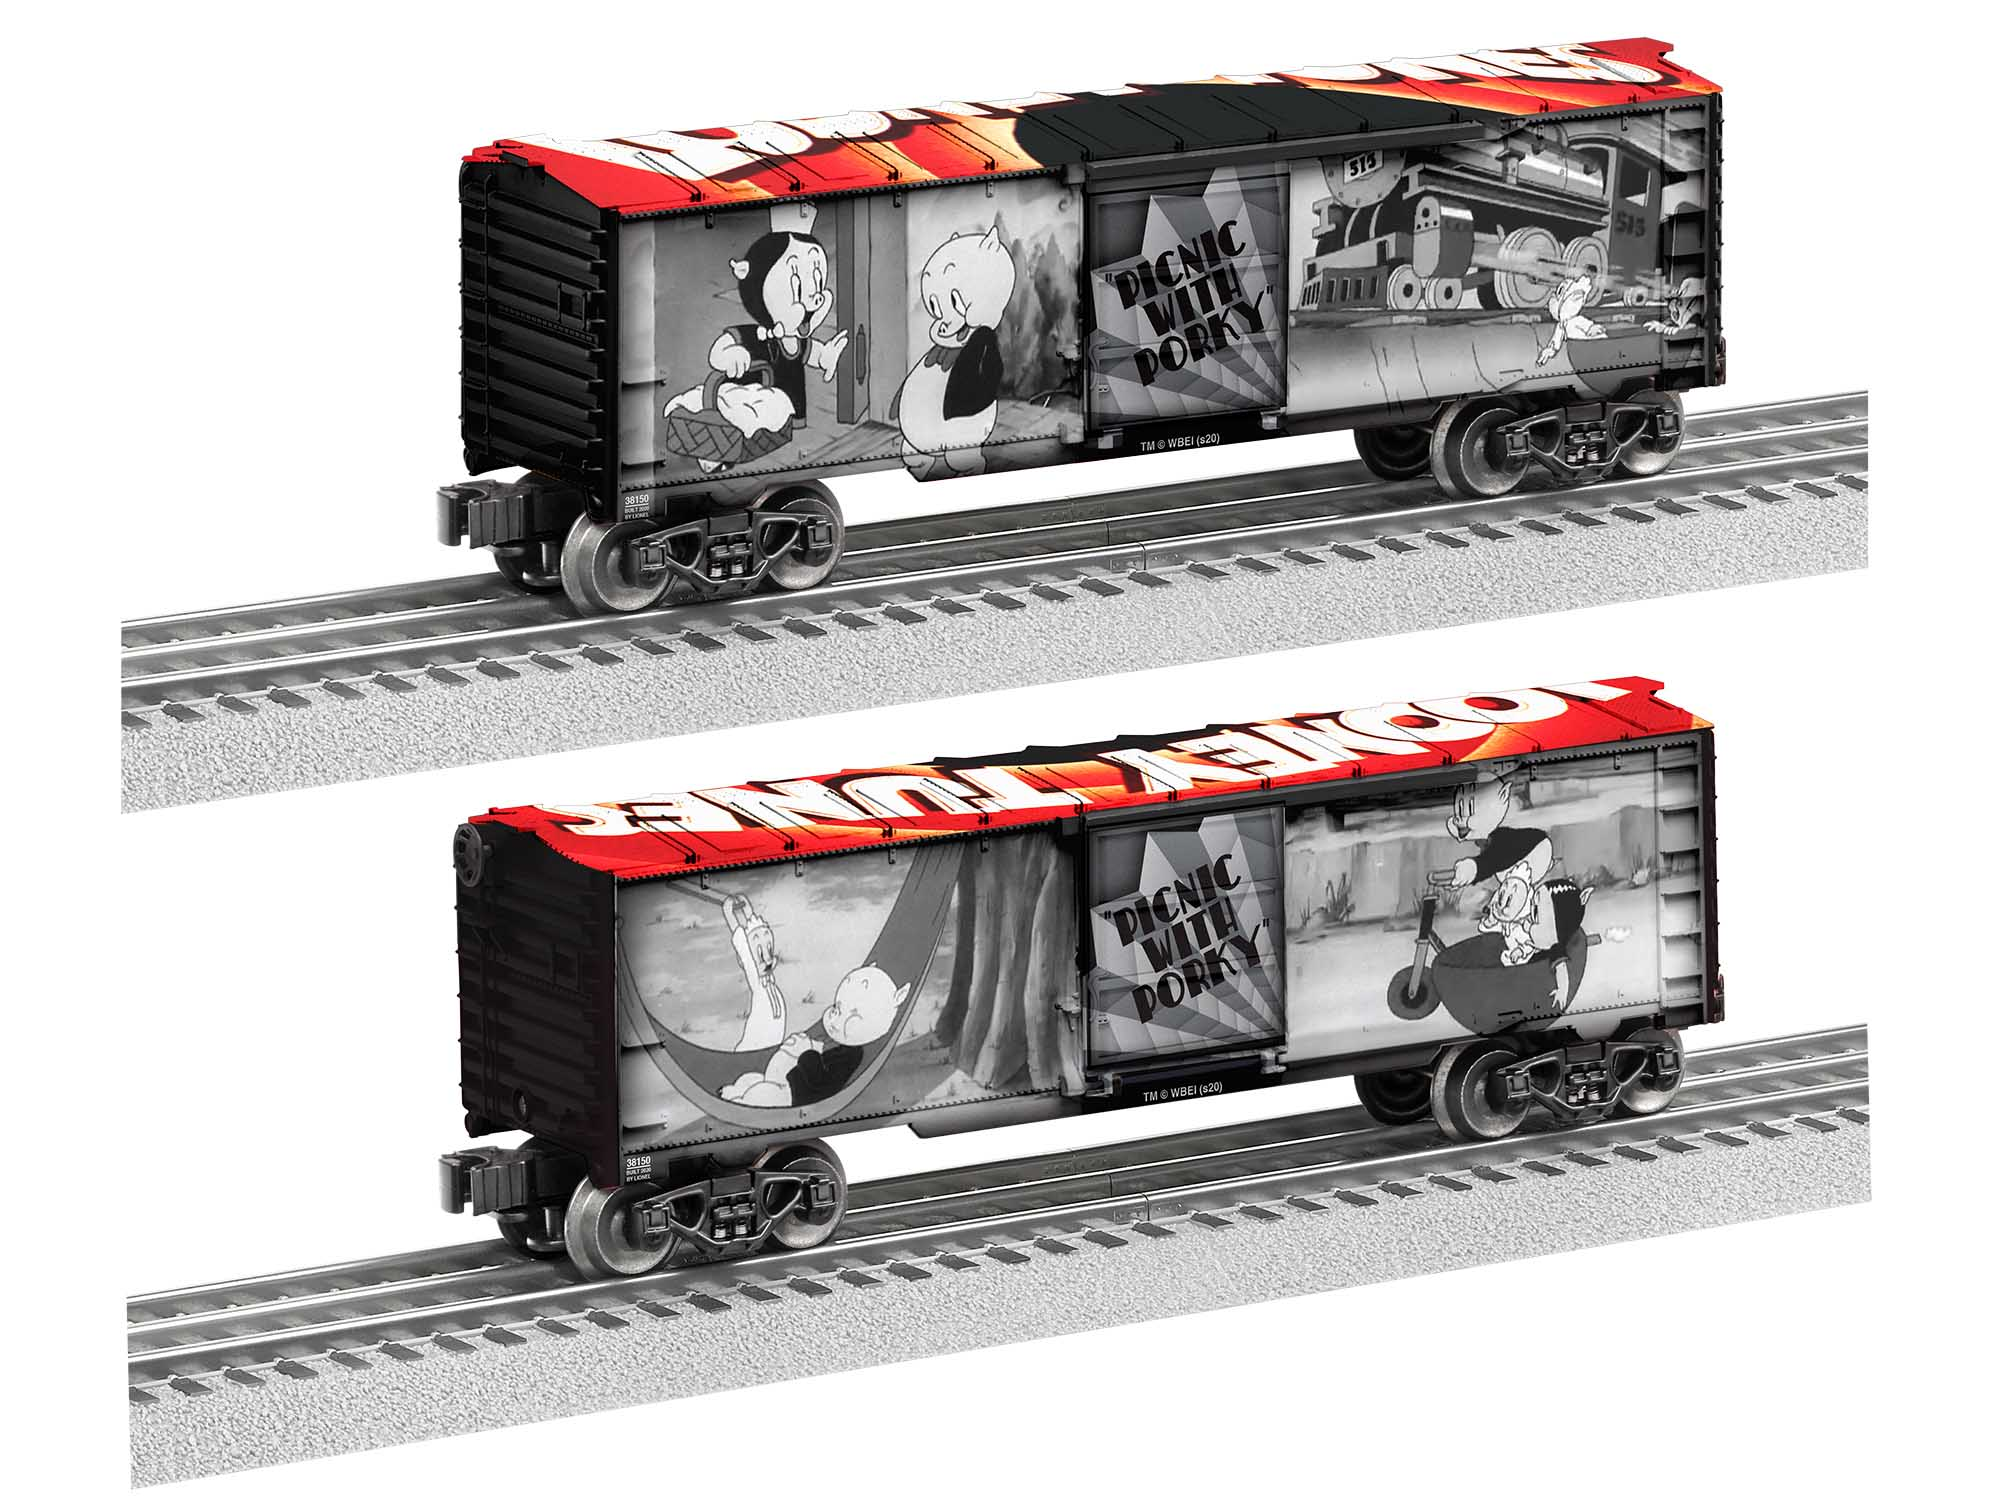 Lionel 2038160 O27 Boxcar Picnic with Porky